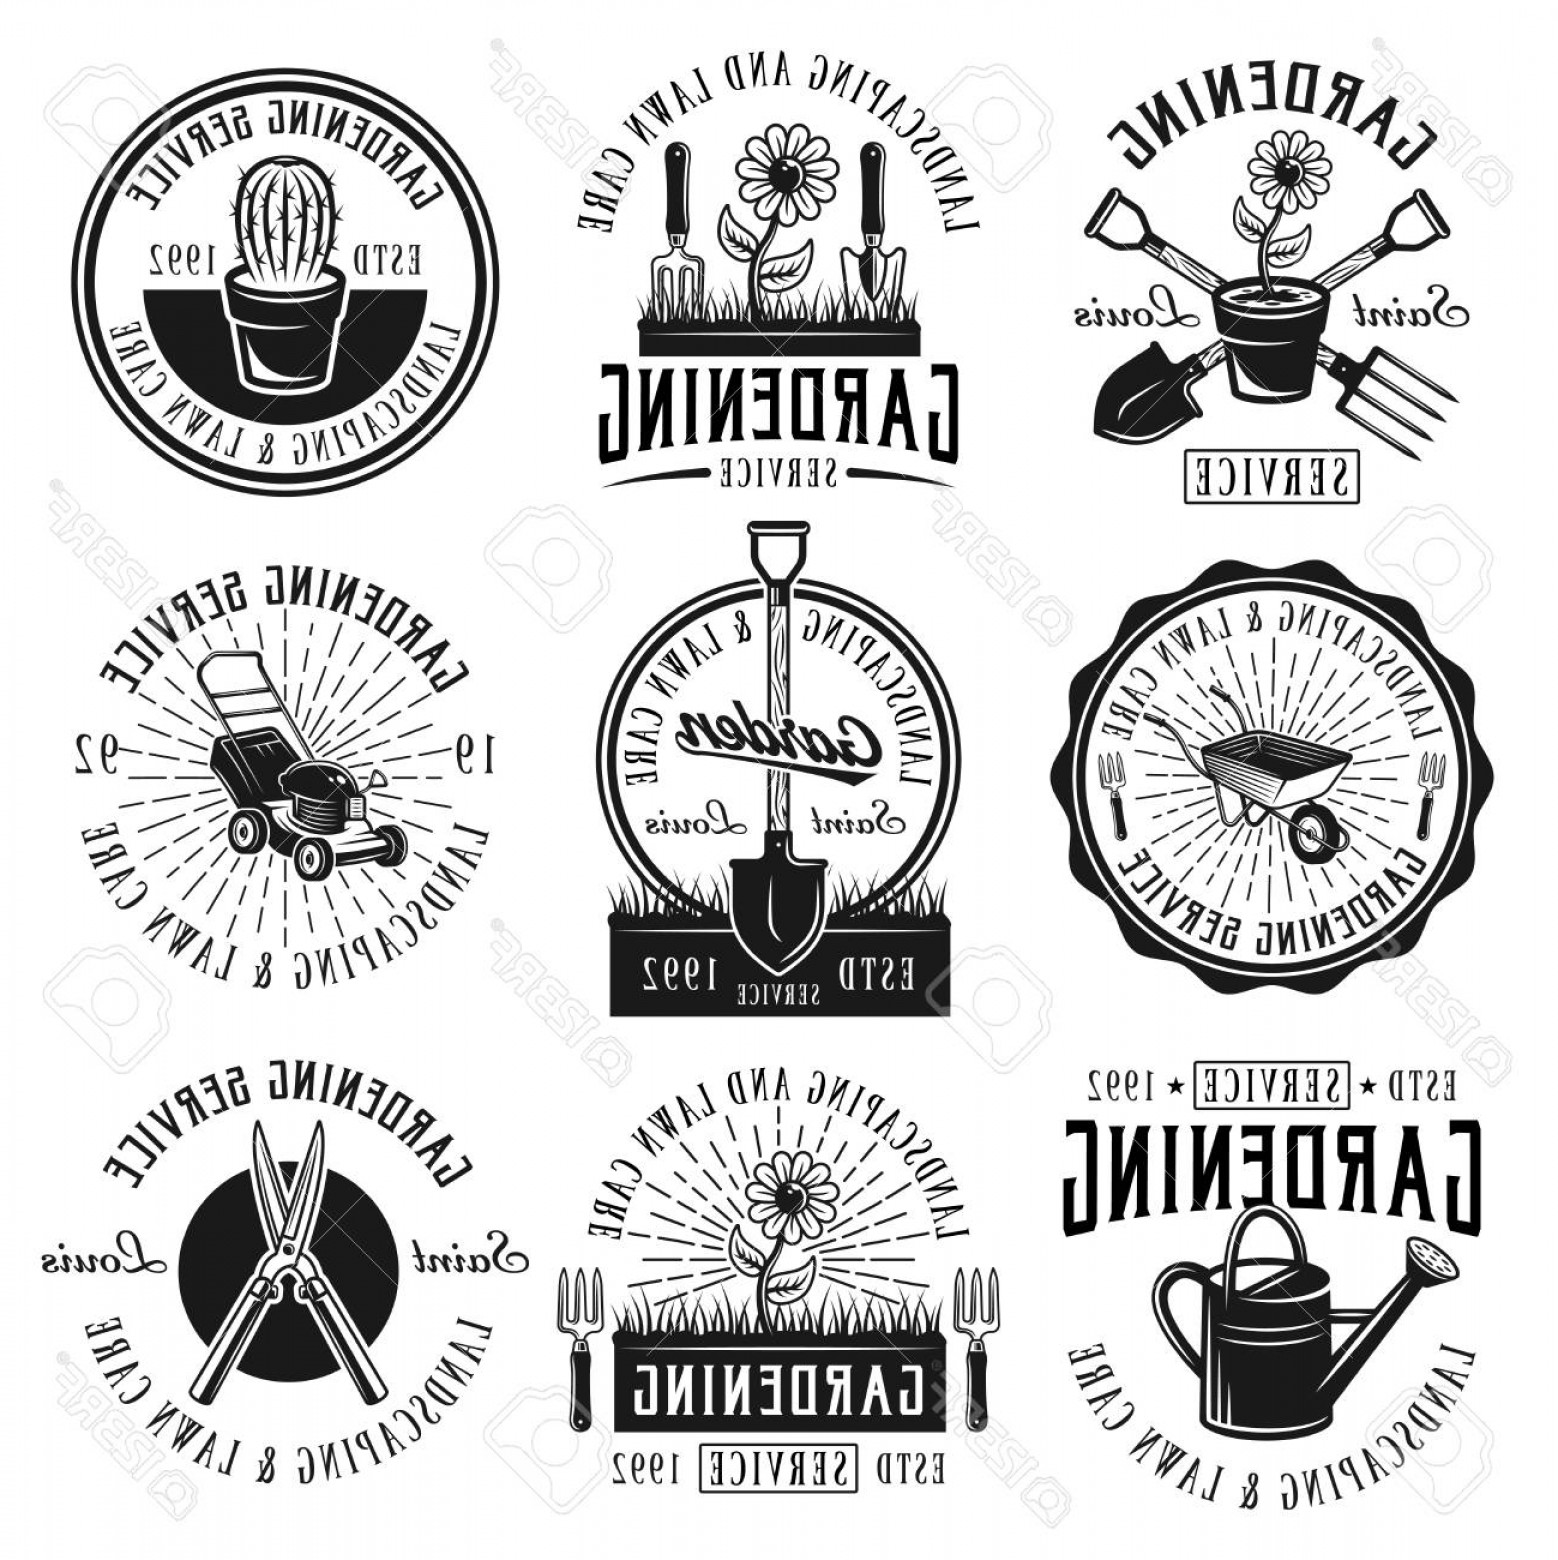 Landscaping Vector Retro: Photostock Vector Gardening Service Landscaping And Lawn Care Set Of Nine Vector Black Emblems Badges Labels Or Logos